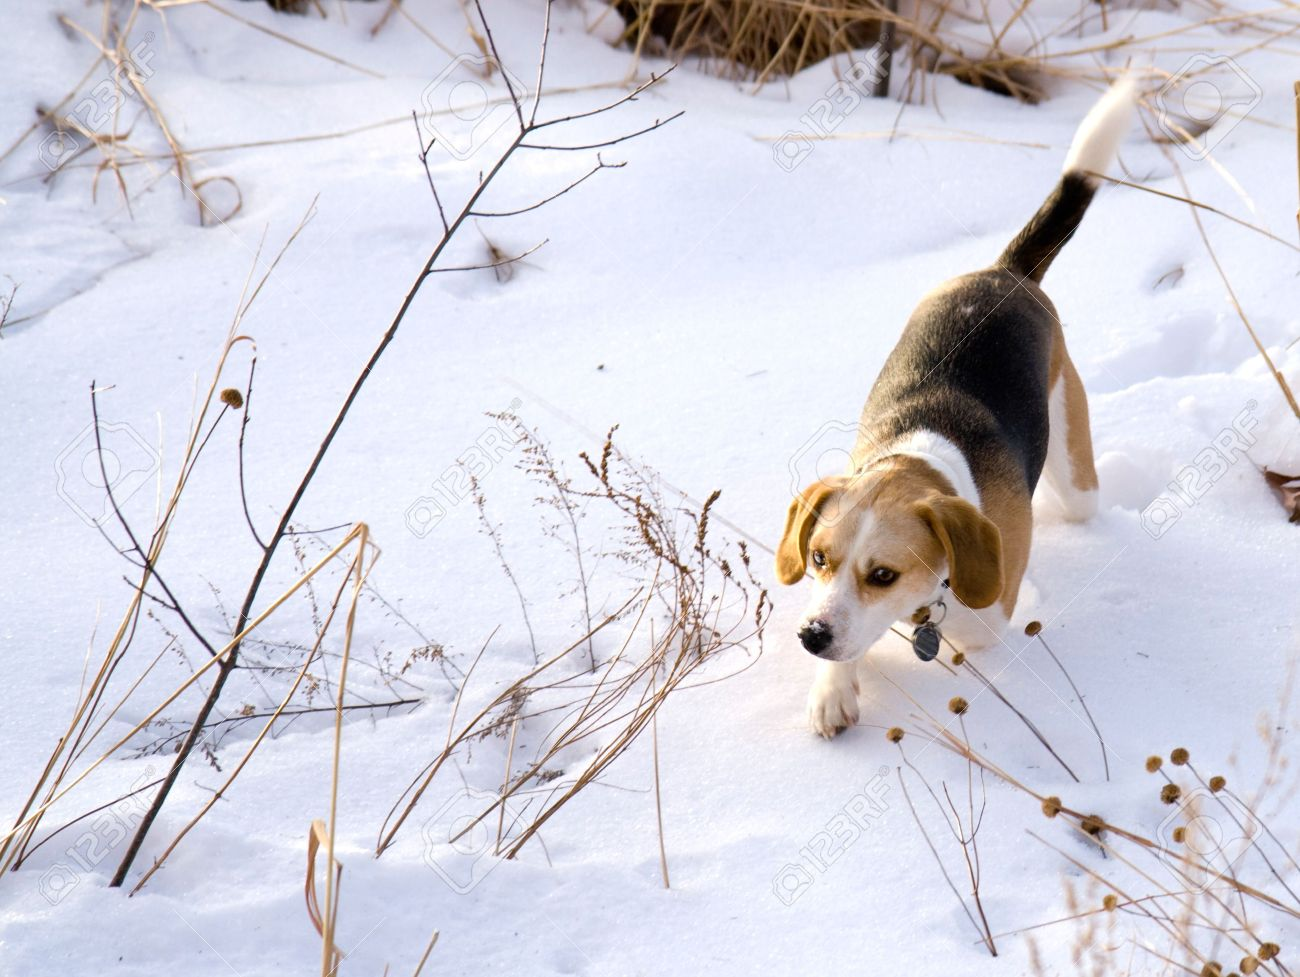 This is a Beagle Hunting a Rabbit in the snow Stock Photo - 4251429